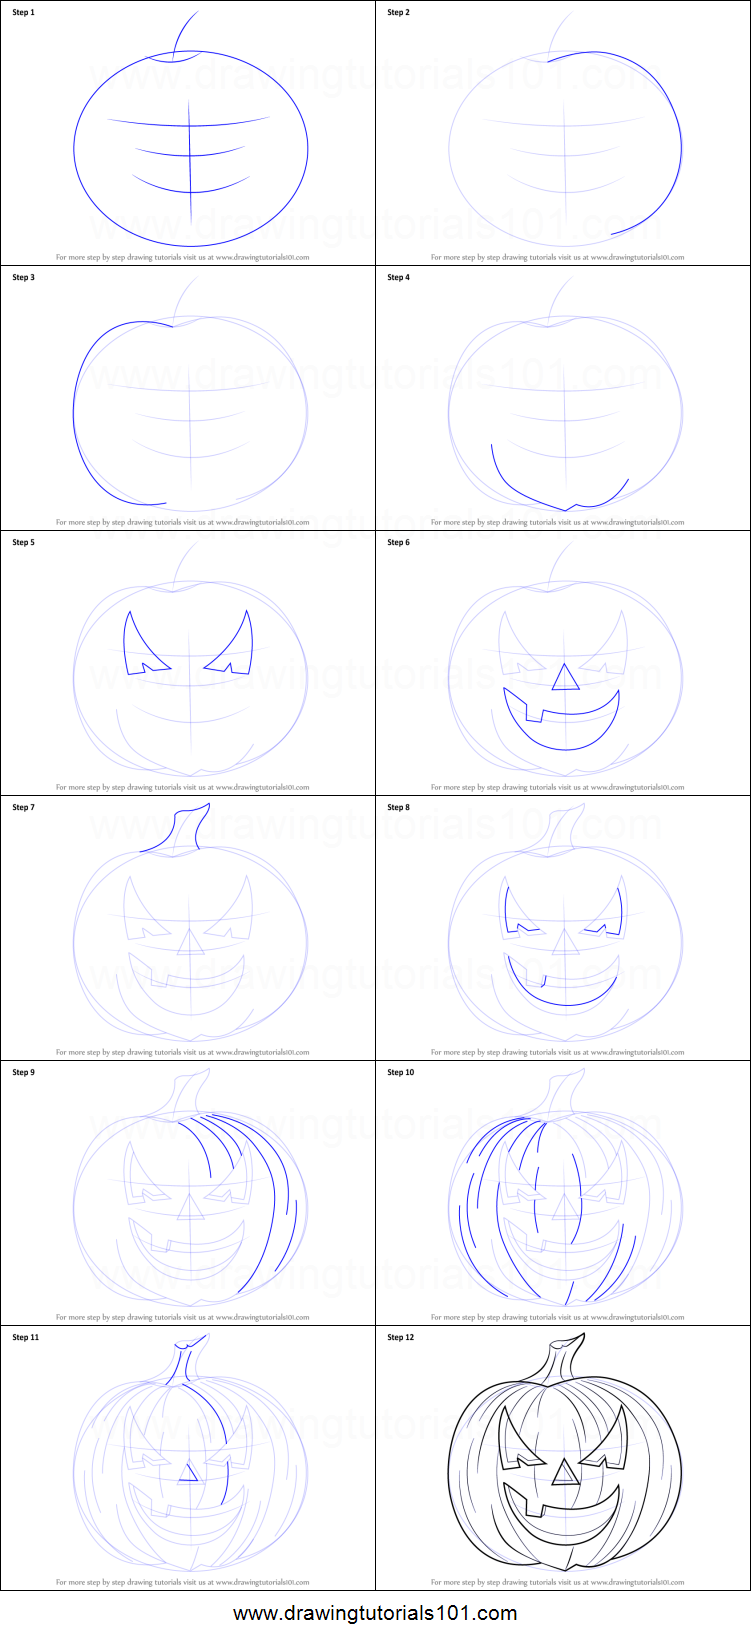 Uncategorized How To Draw A Halloween Pumpkin how to draw halloween pumpkin printable step by drawing sheet drawingtutorials101 com